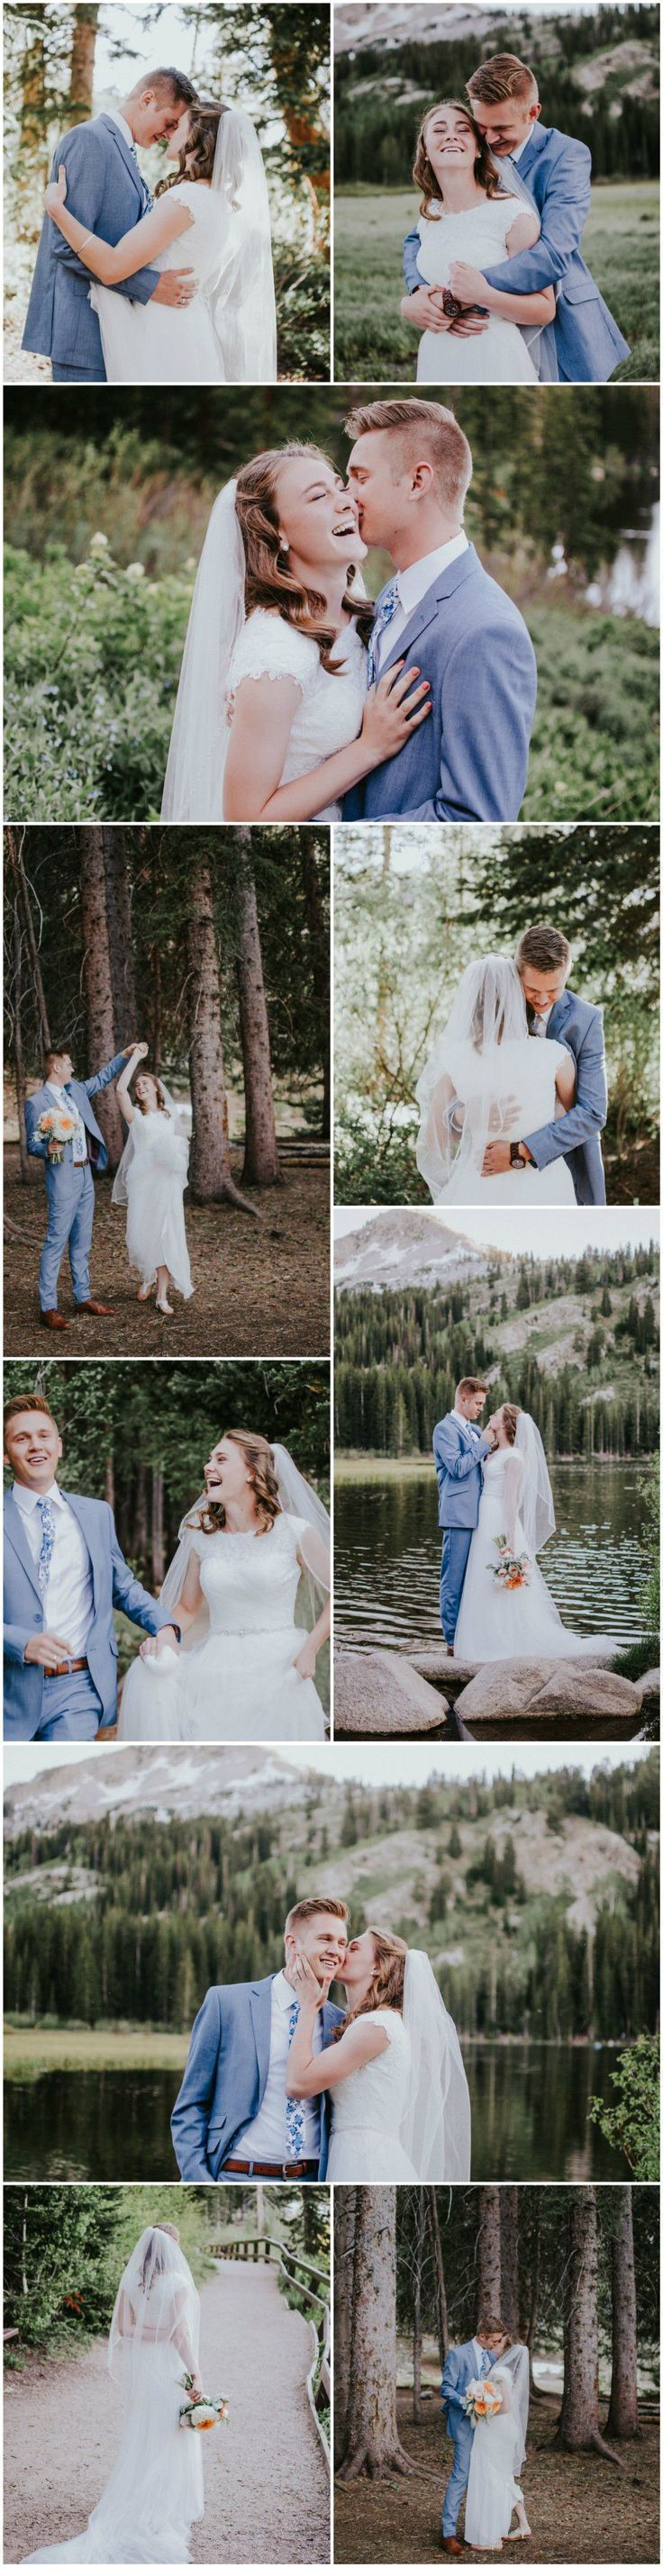 Mountain Outdoor Wedding Photography poses and ideas | Silver lake, authentic smiling, poses! | Simply Amor Photography  #elopement #adventureelopement #weddingphotography